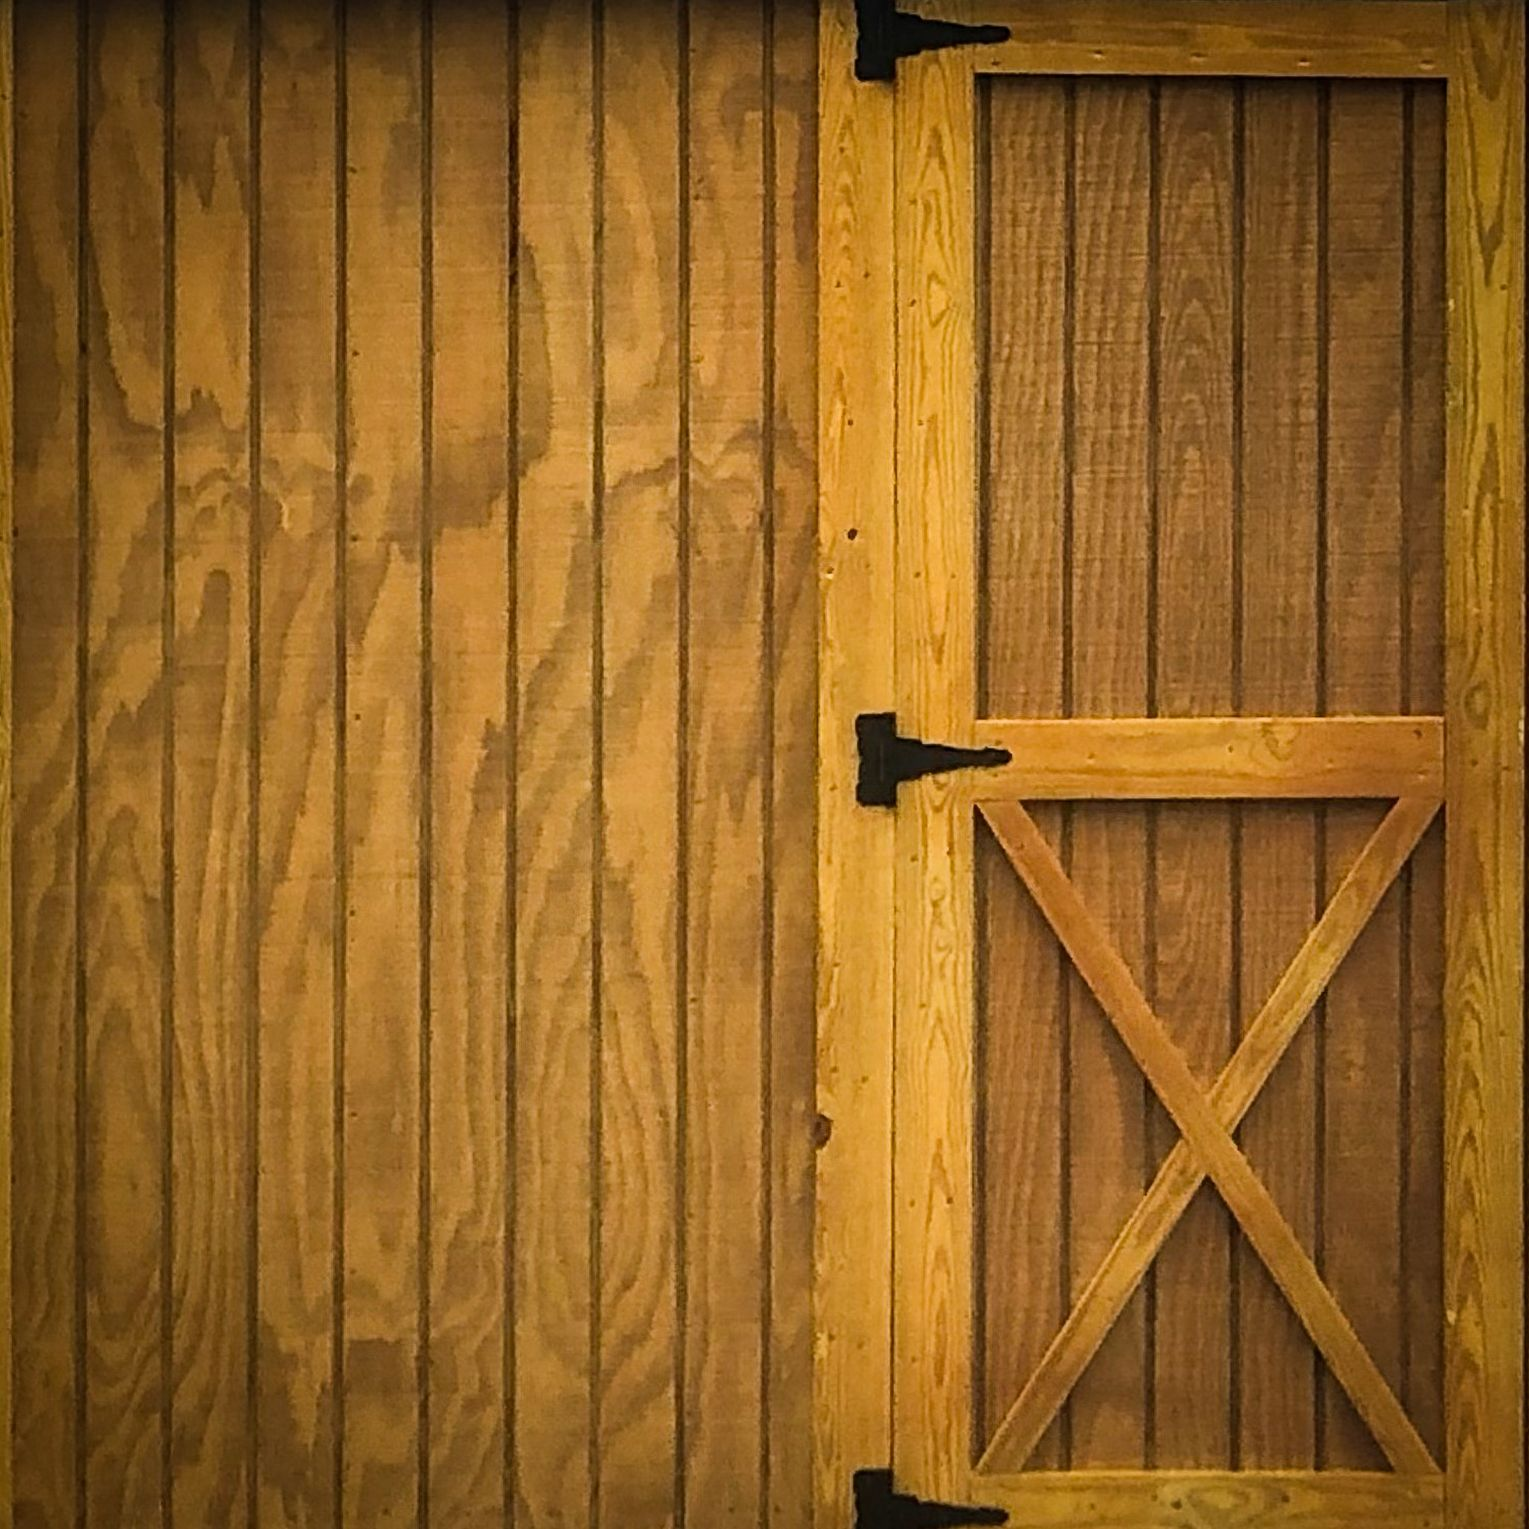 Wood siding for custom sheds in KY and TN